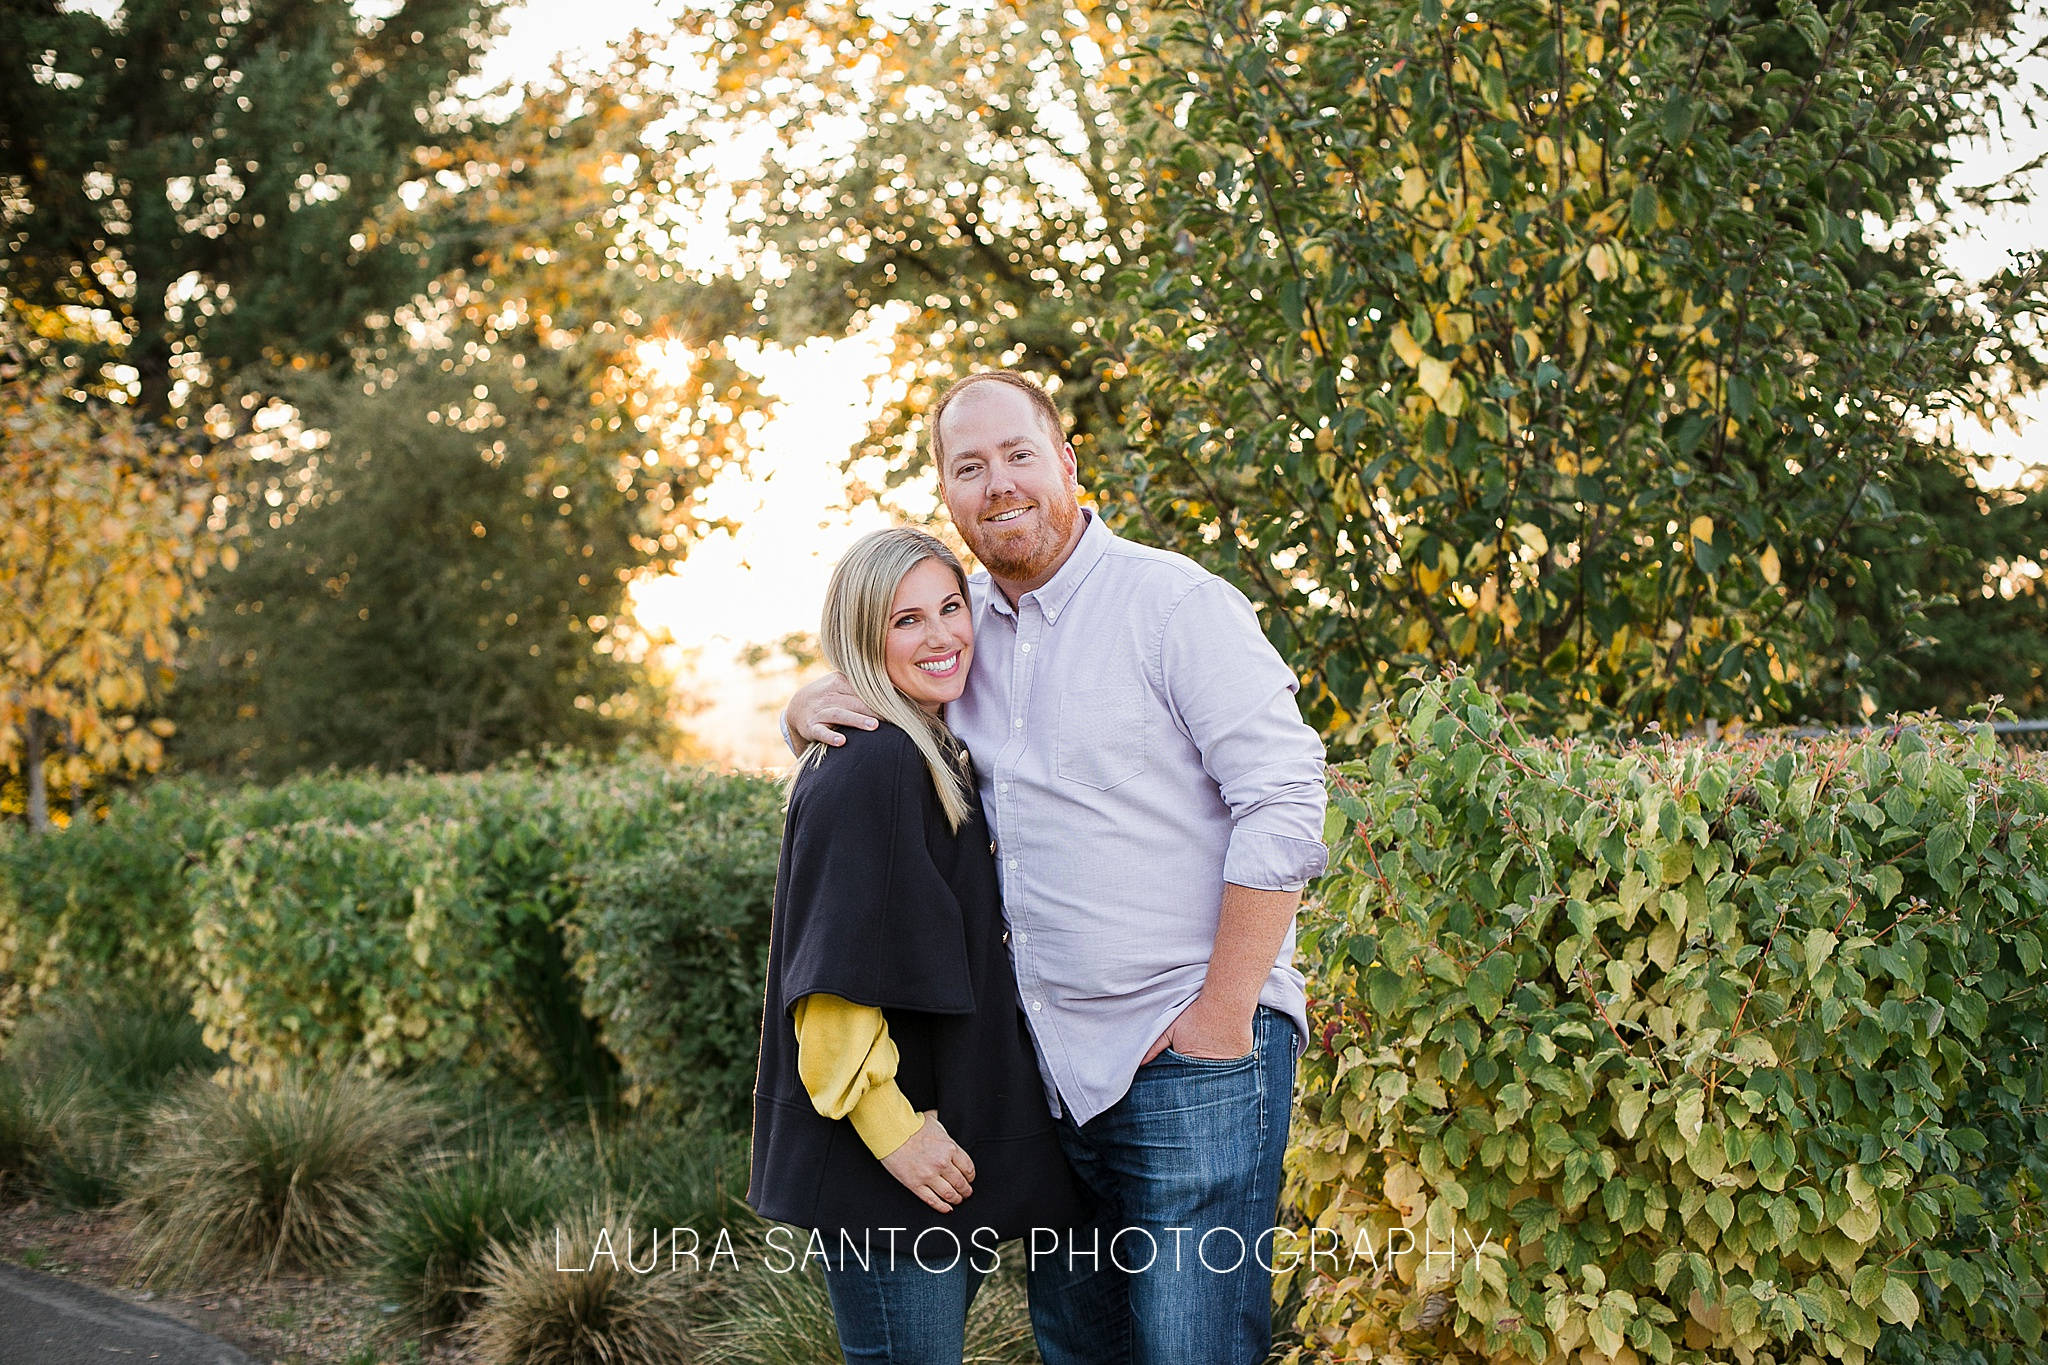 Laura Santos Photography Portland Oregon Family Photographer_0853.jpg